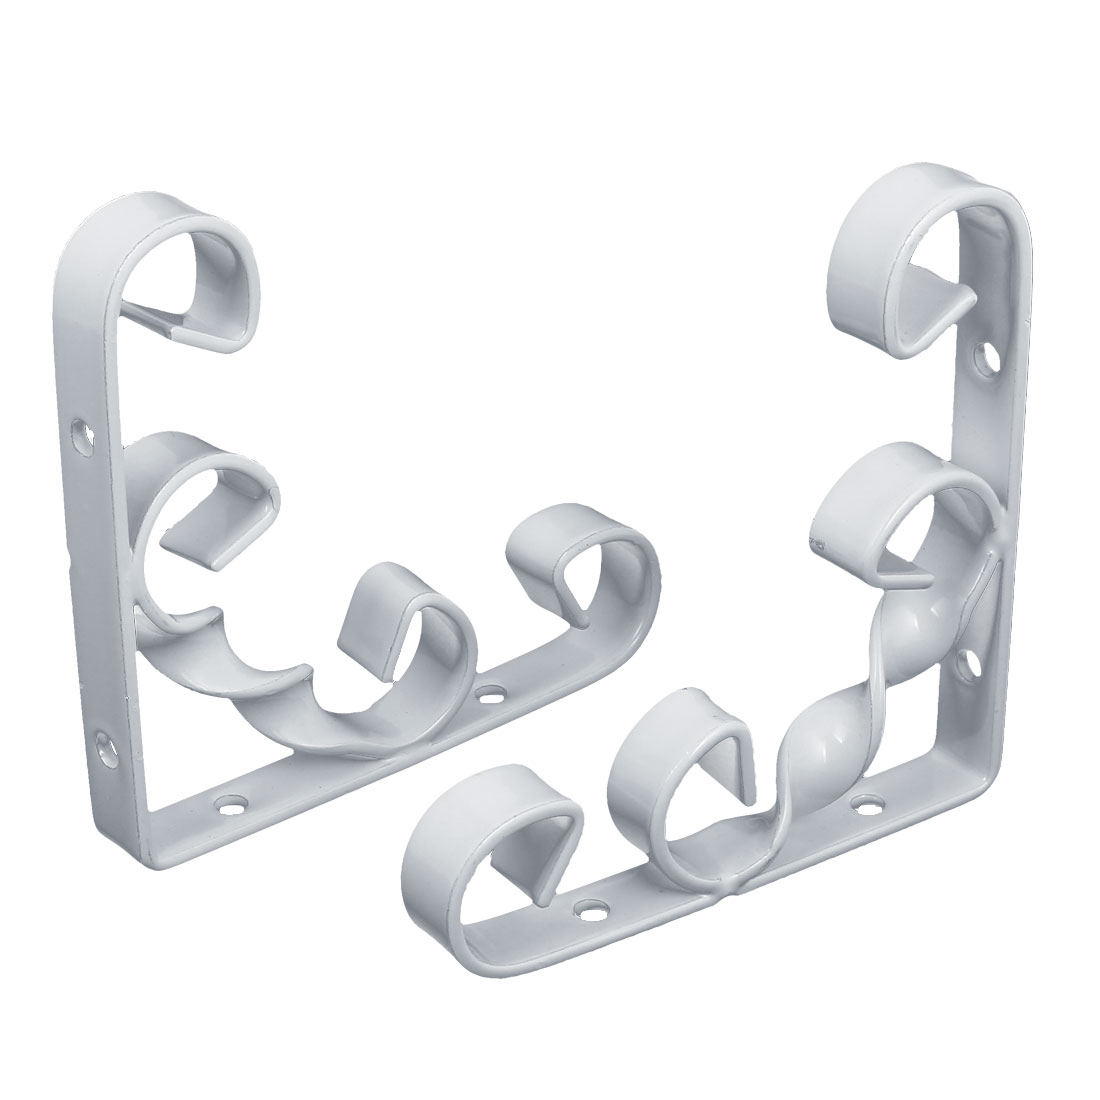 100mm x 100mm 90 degree Wall Mounted Shelf Bracket Brace Support White 2pcs